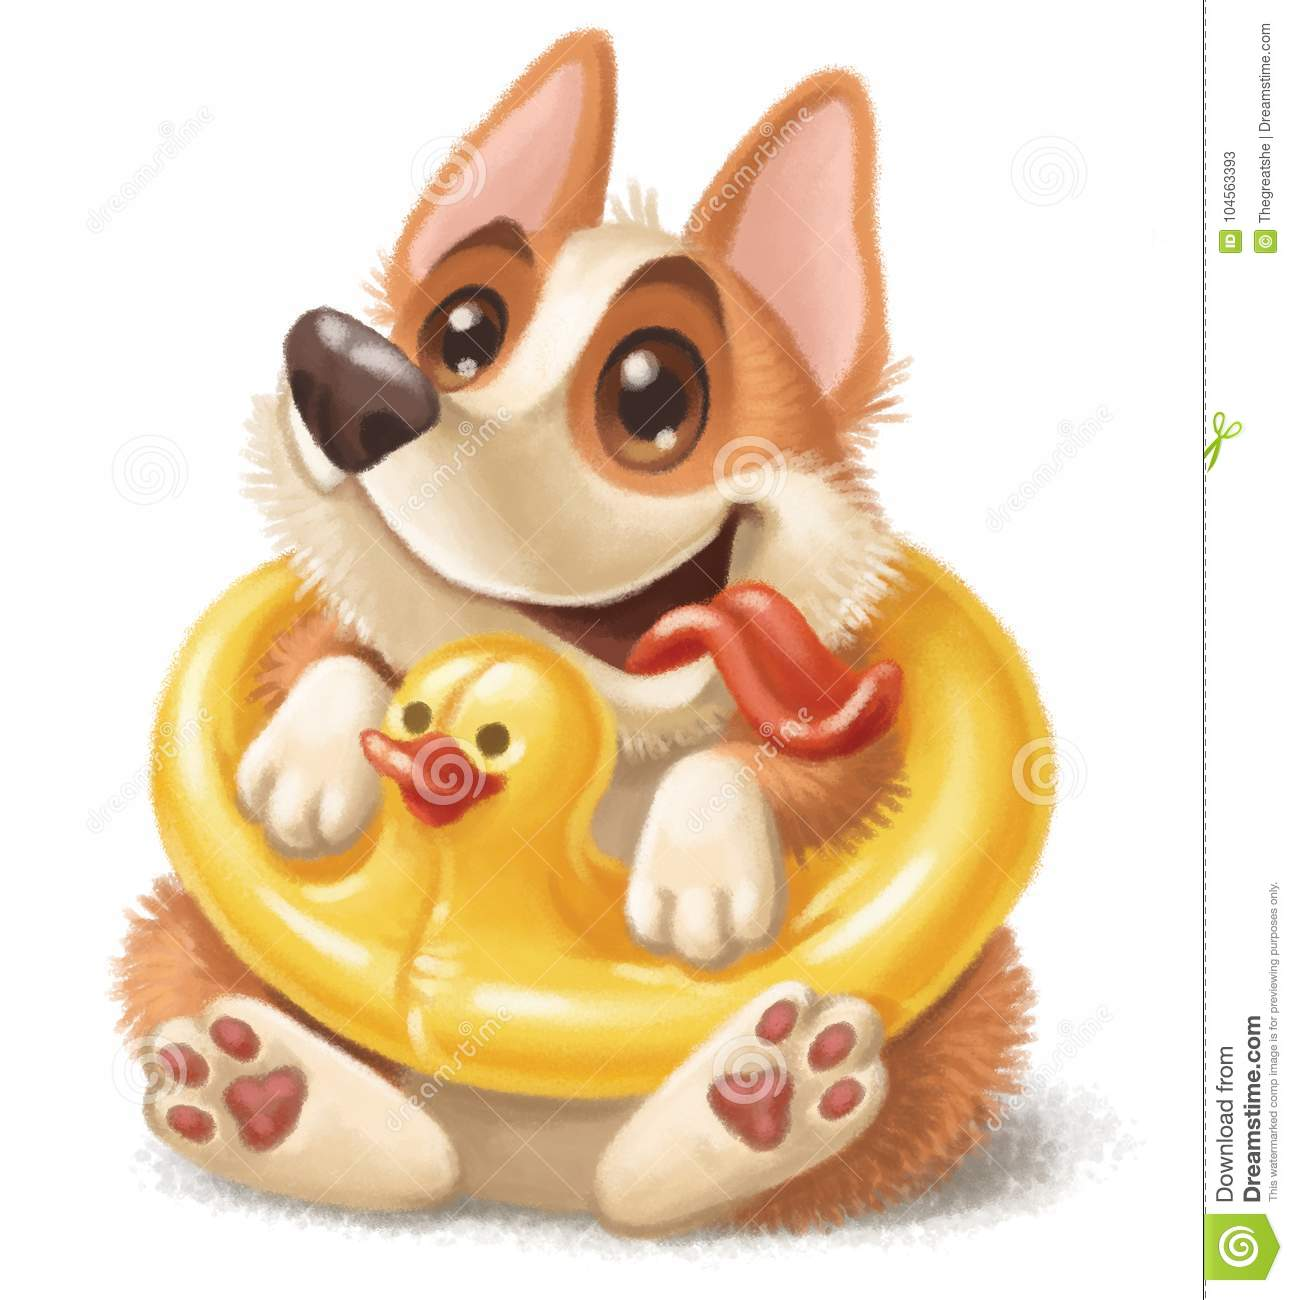 Corgi Puppy Sitting In A Yellow Duck Swimming Ring Stock Illustration Illustration Of Character Lifesaver 104563393